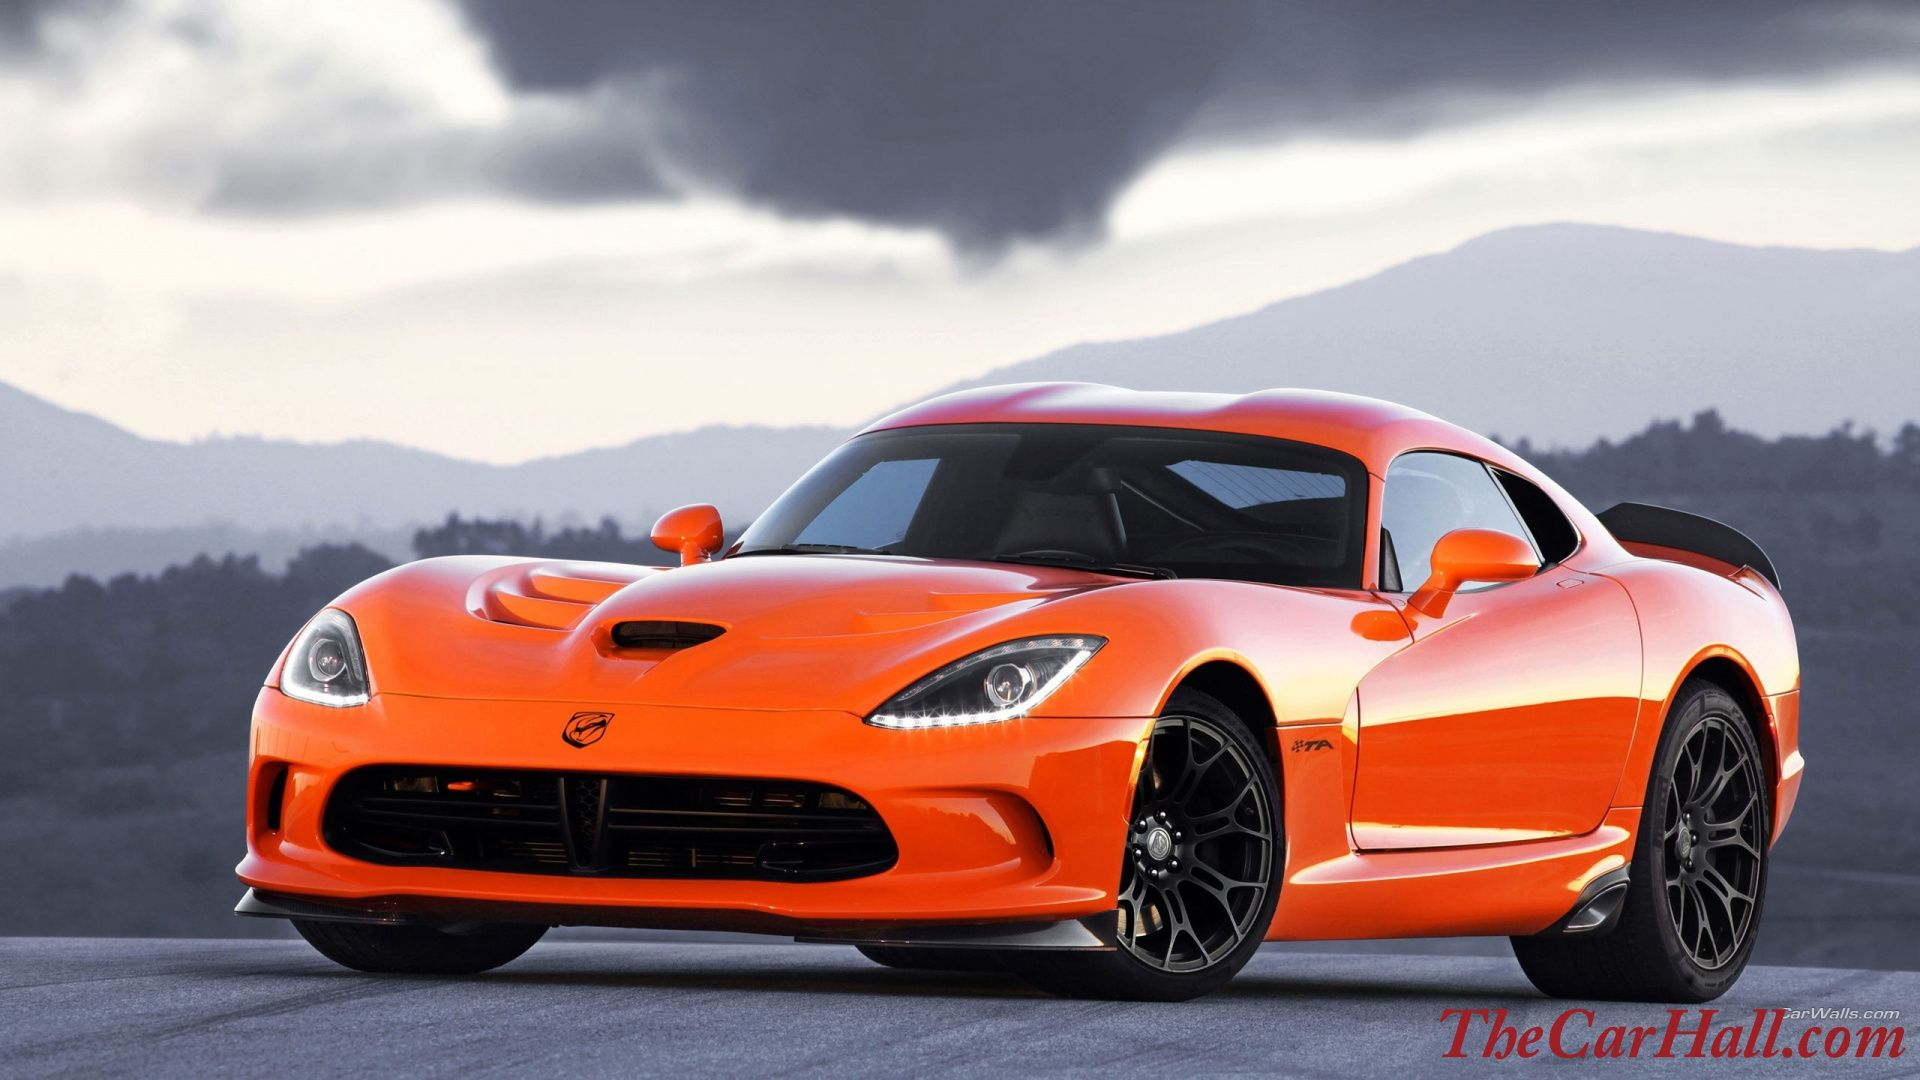 Like fast cars? Check Out TheCarHall.com for a listing of the top ...